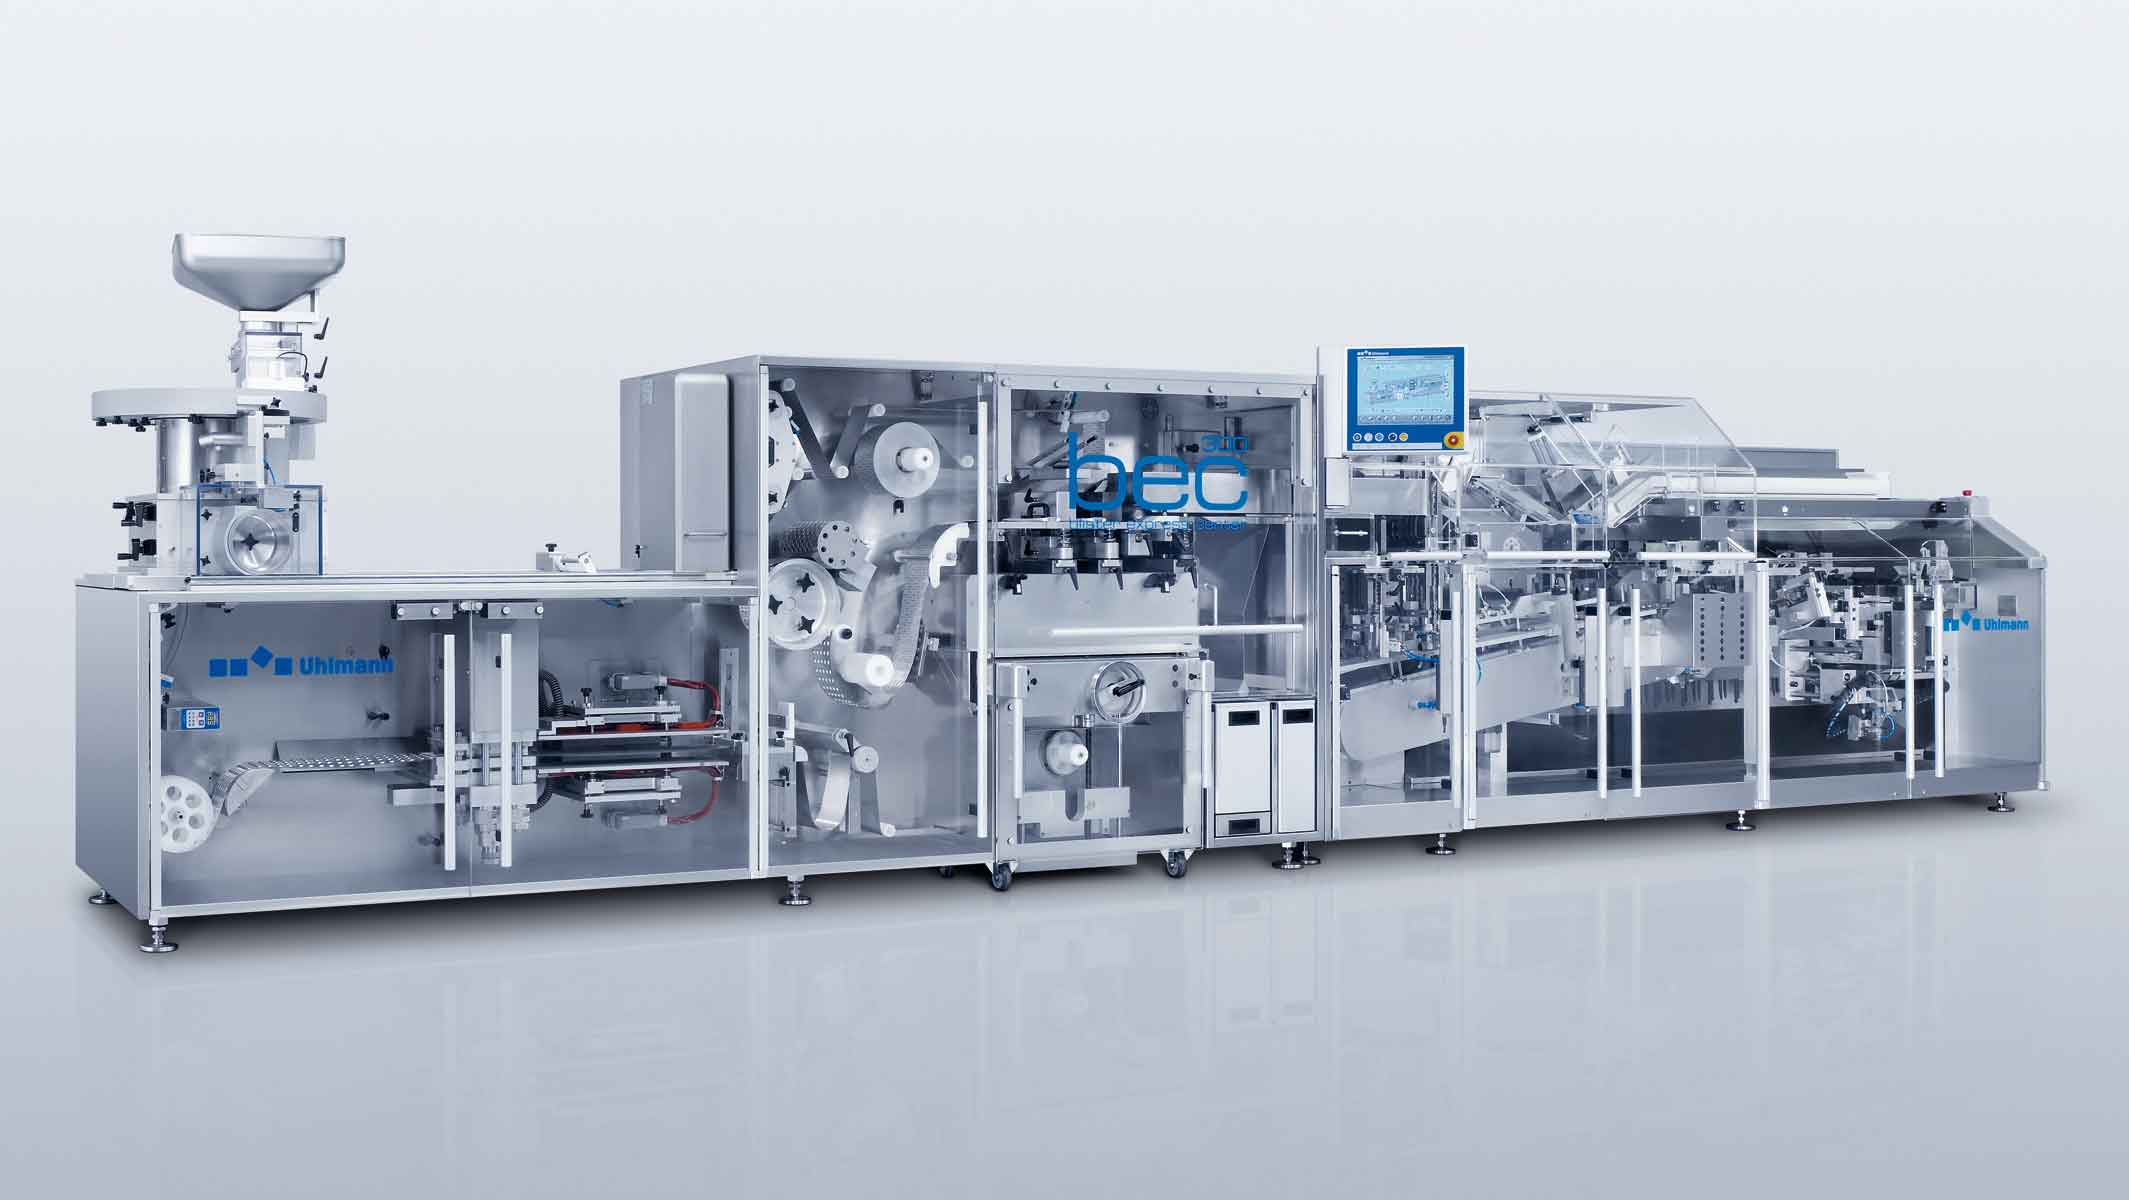 Uhlmann S Blister Express Center 300 Enhances Packaging